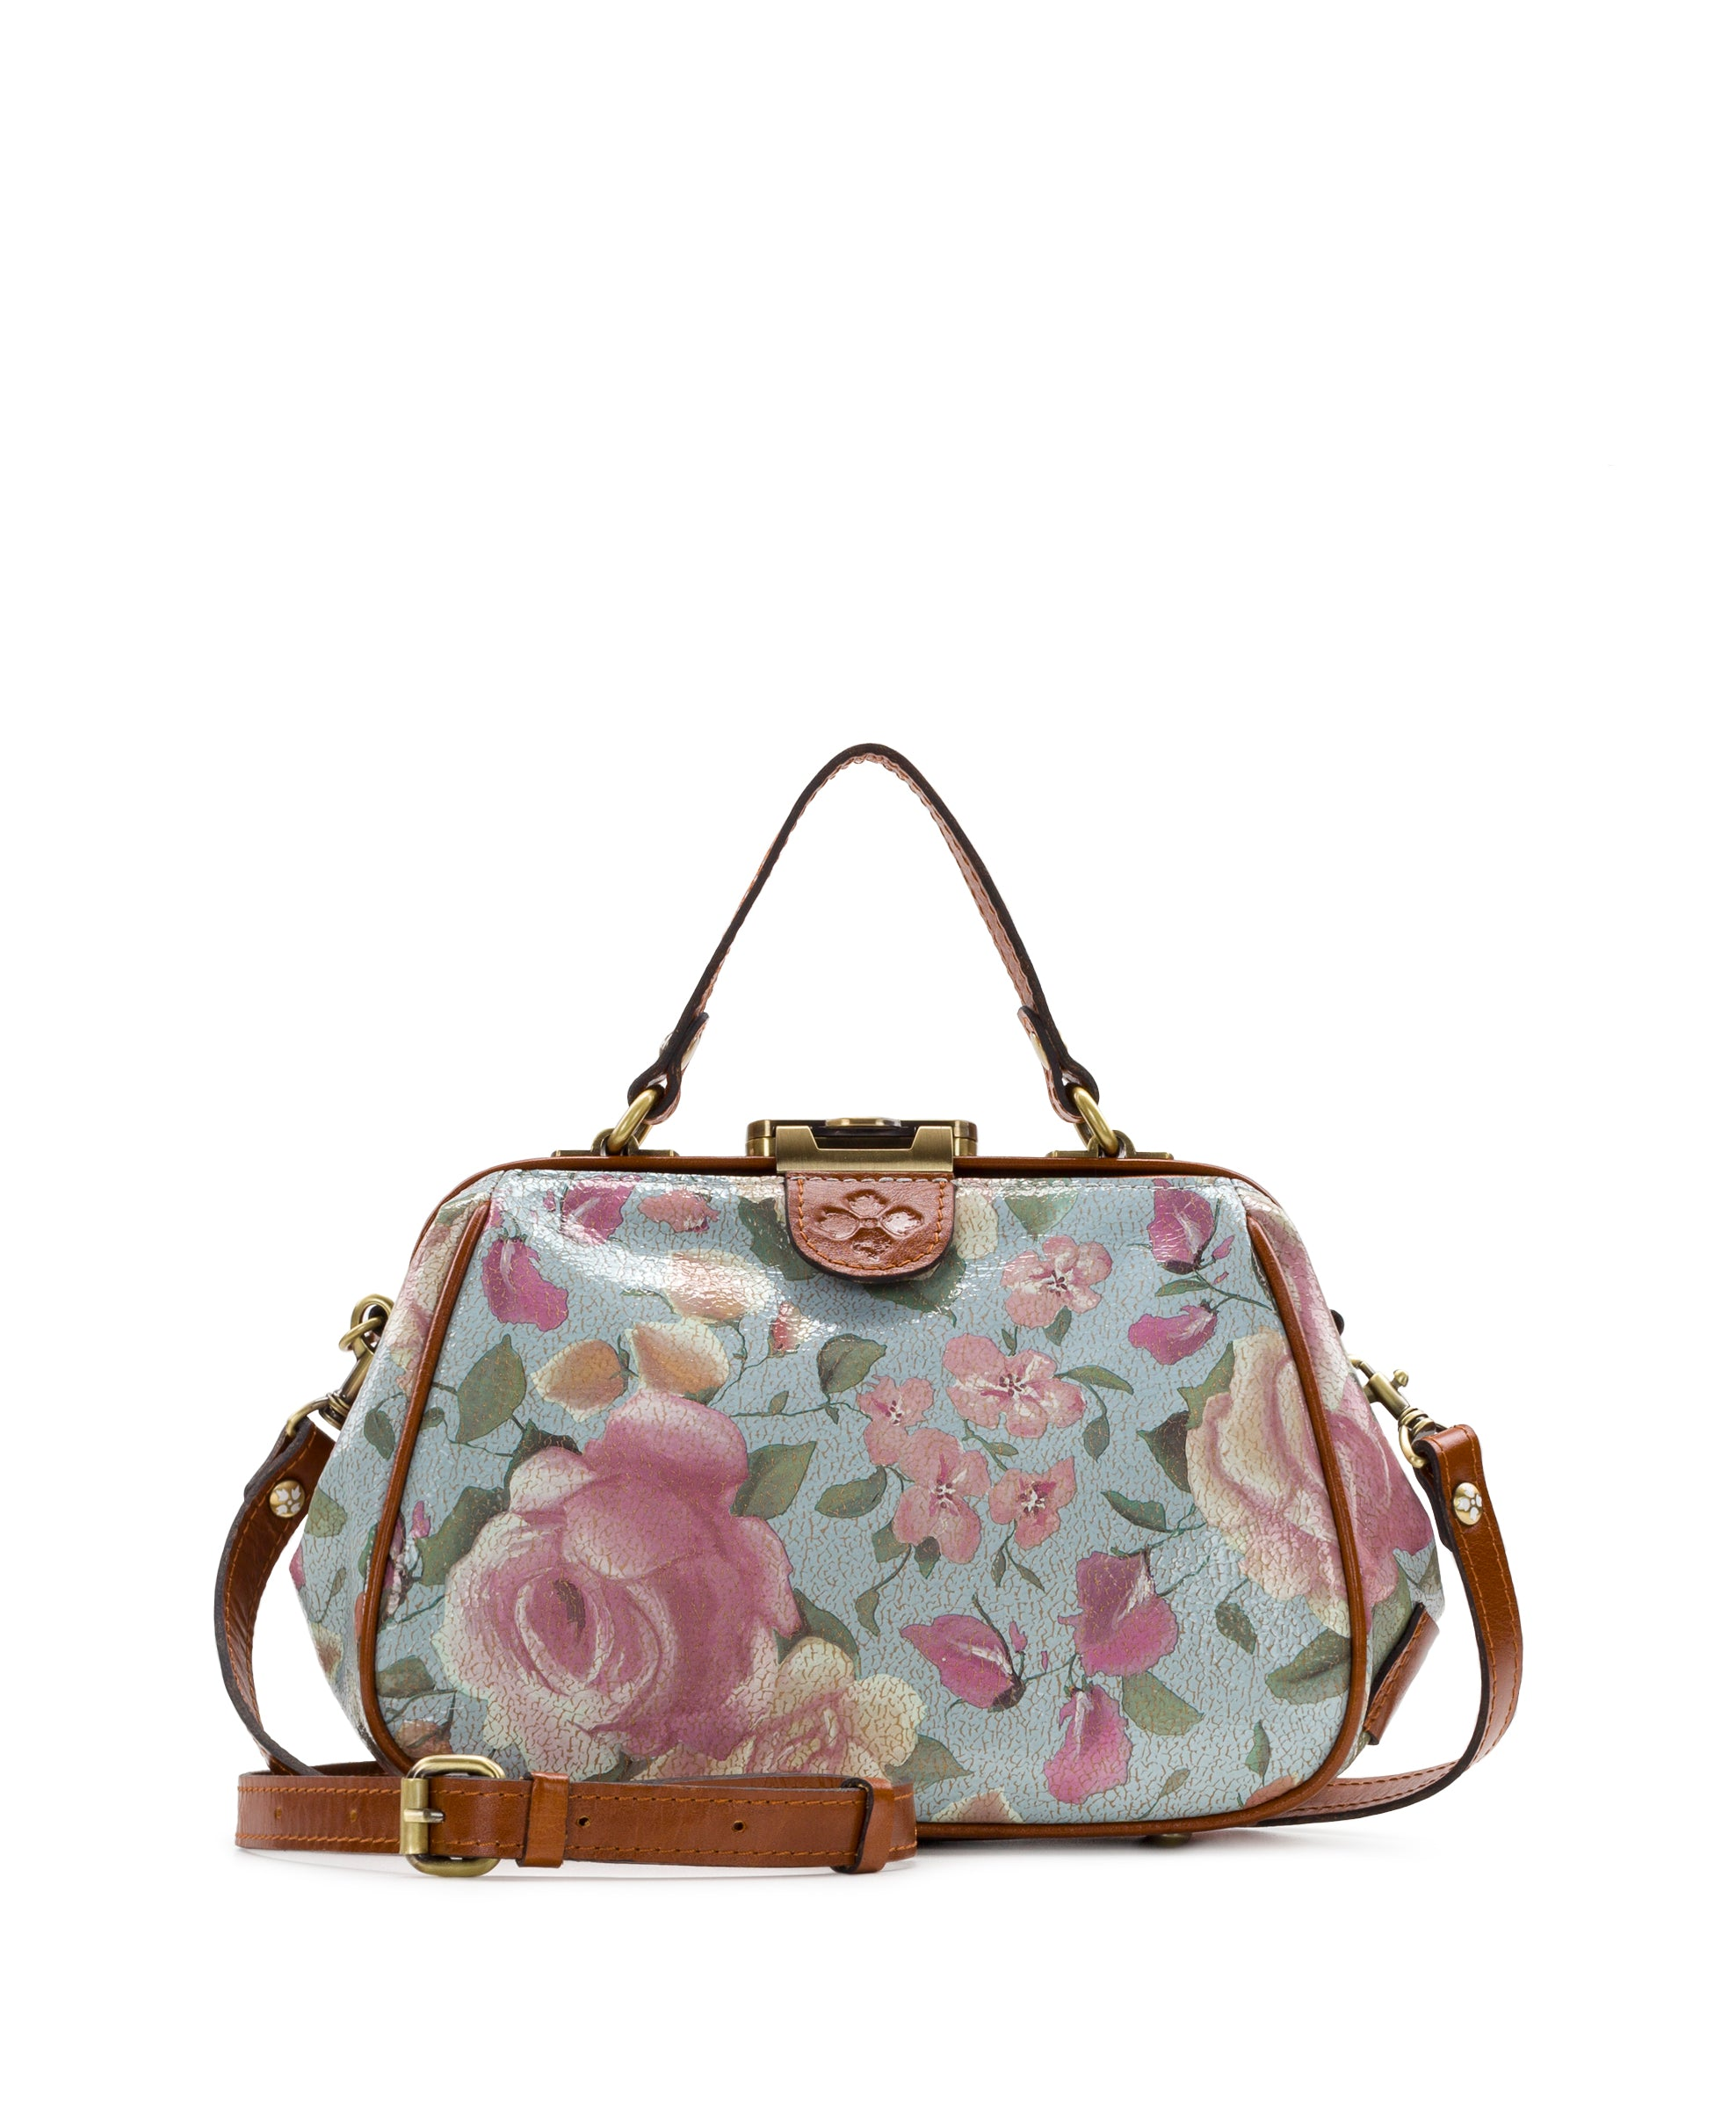 Gracchi Satchel - Crackled Rose